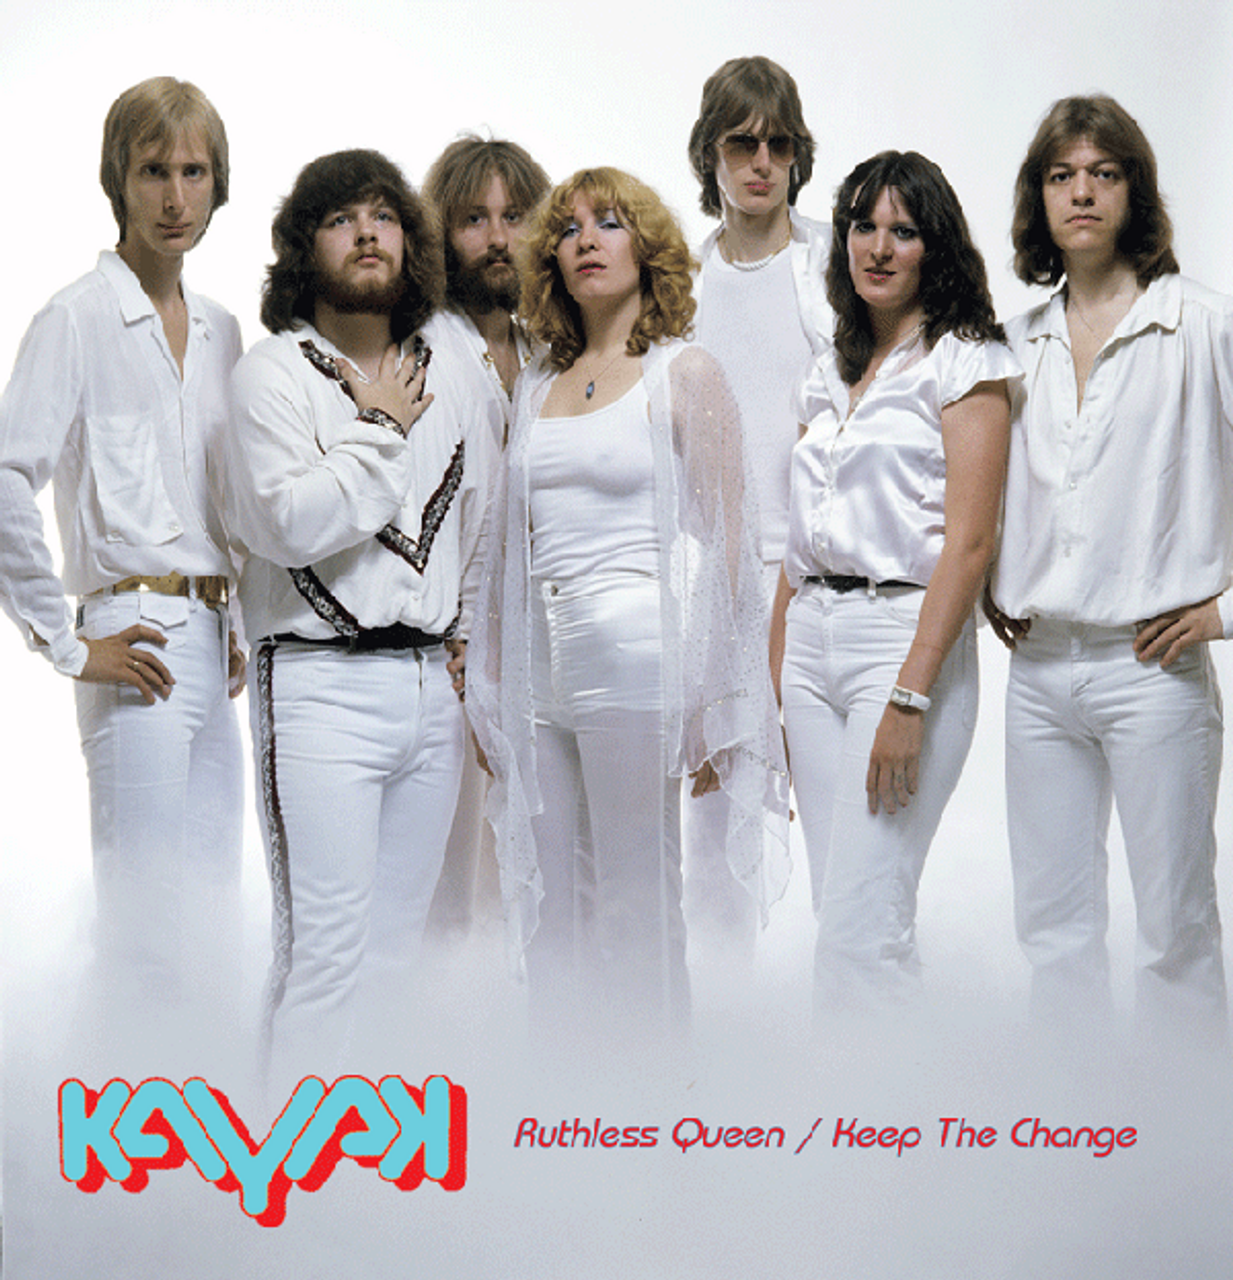 Kayak - Ruthless Queen b/w Keep The Change